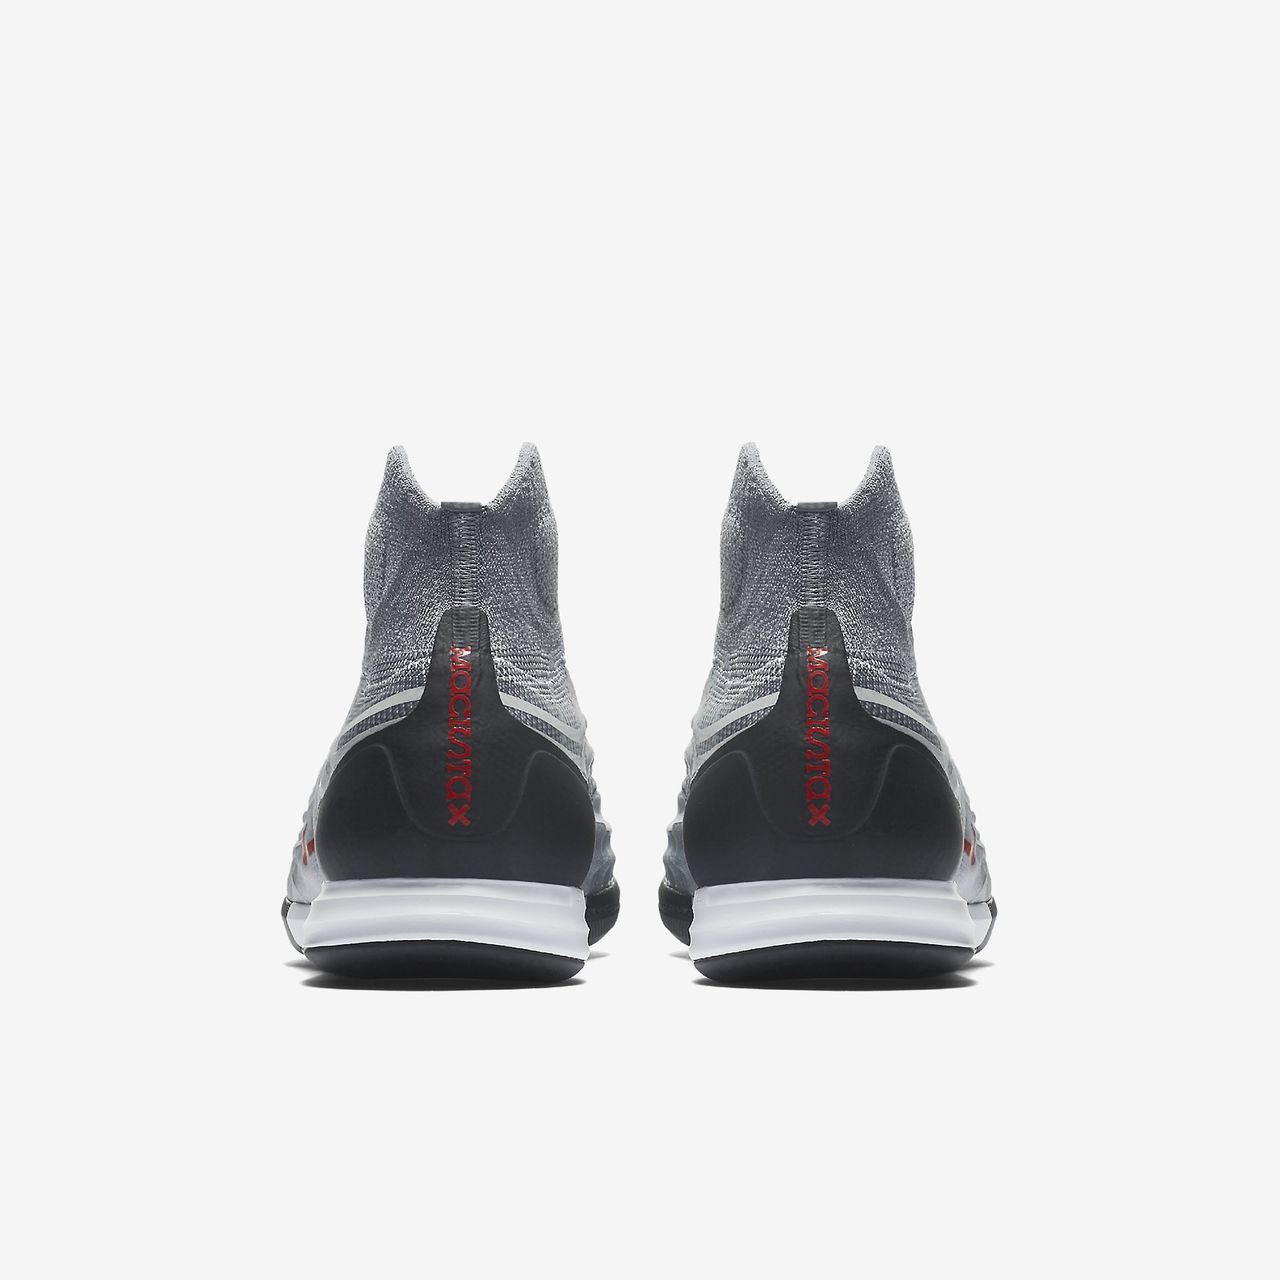 online store 14576 ffc3e ... Click to enlarge image  nike magistax proximo ii ic revolution cool grey black wolf grey varsity red g.jpg